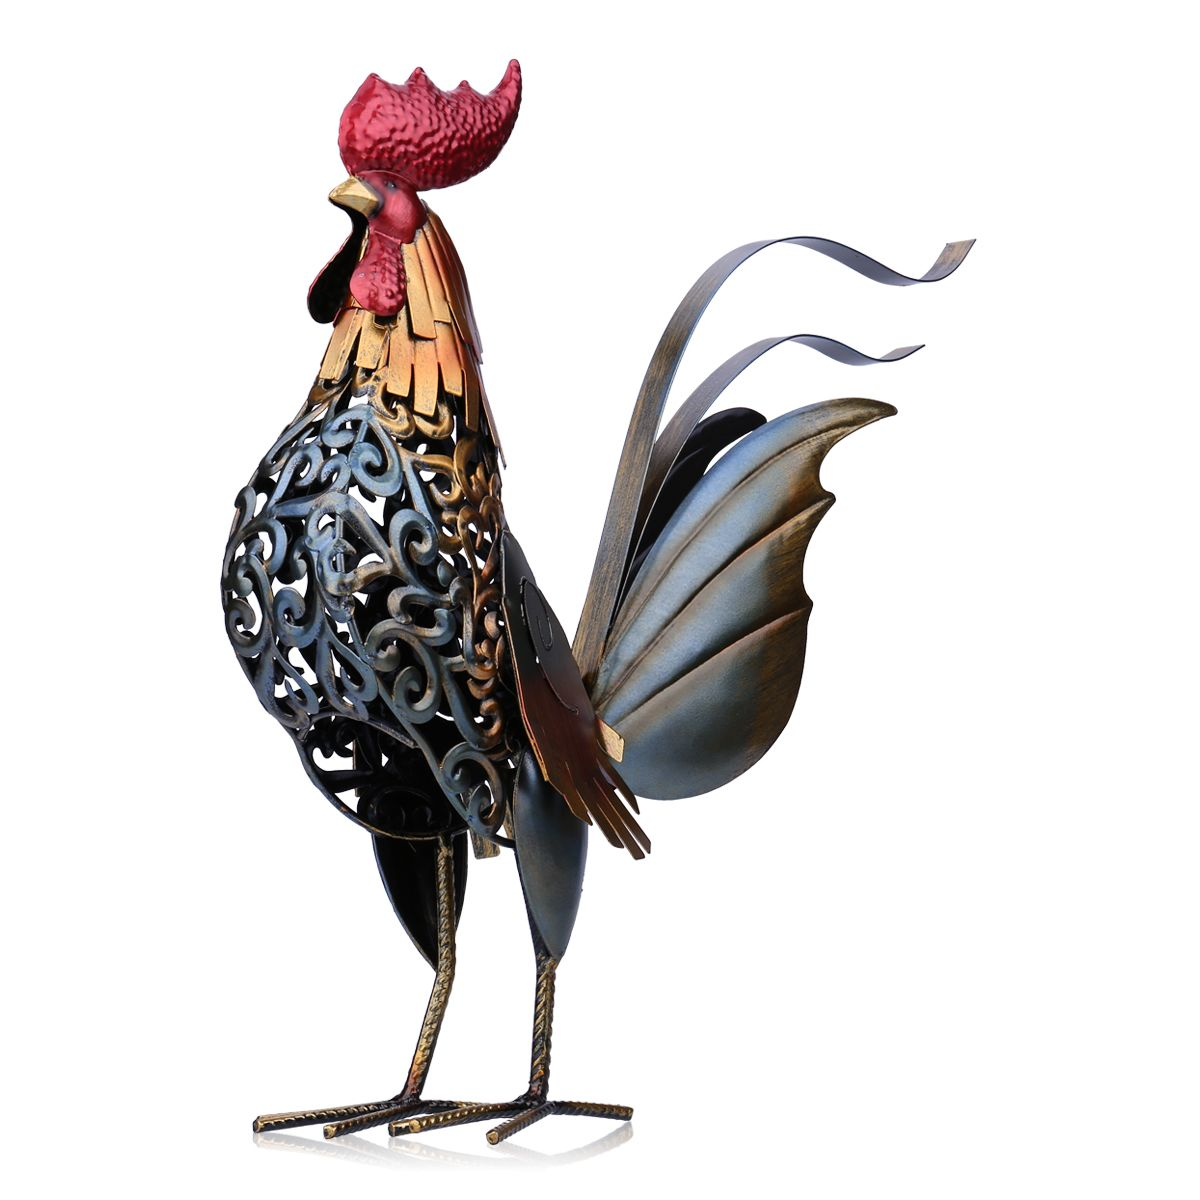 Tooarts Metal Figurine Iron Rooster Home Decor Articles: Best And Cheap Multicolored Tooarts Carved Iron Rooster